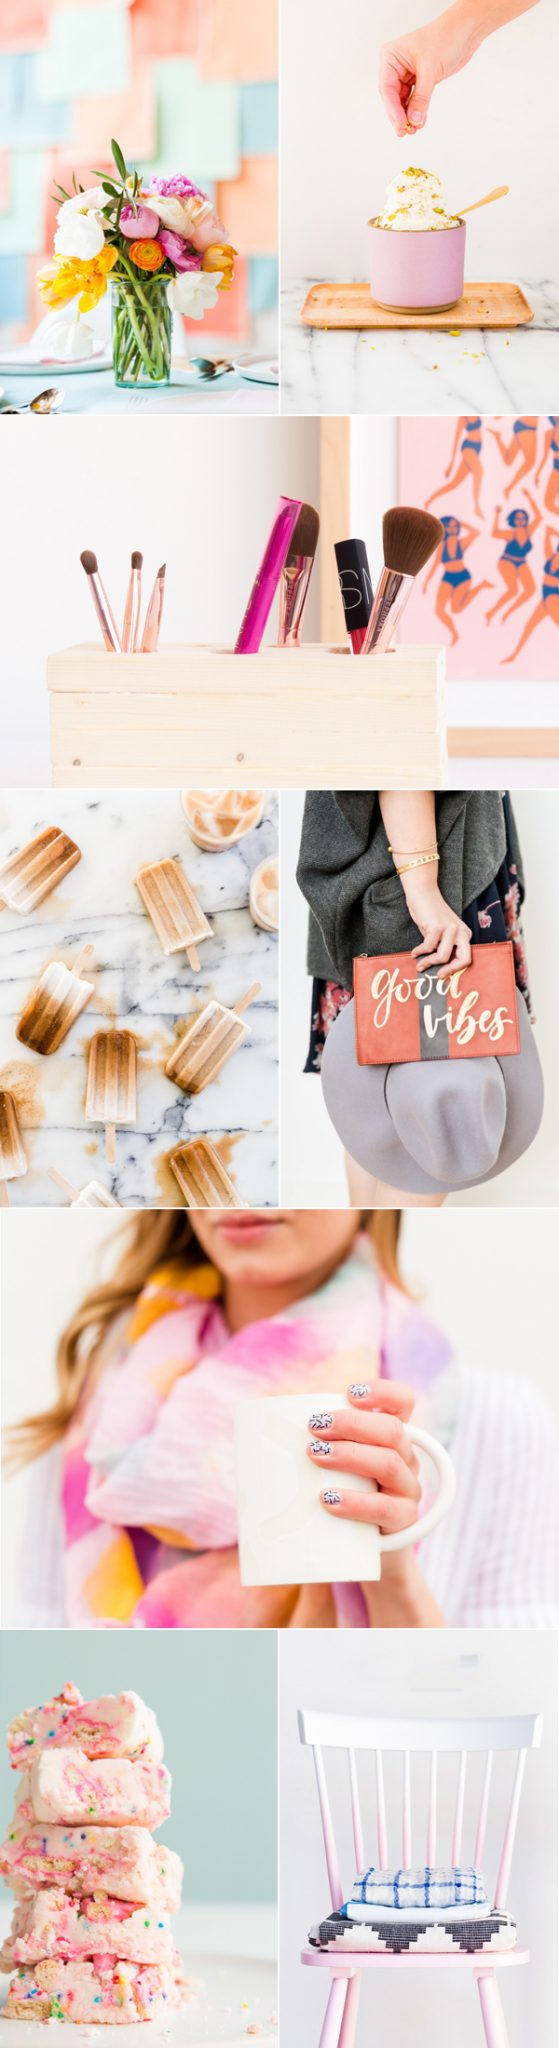 Favorite Bloggers   Paper & Stitch featured by @cydconverse